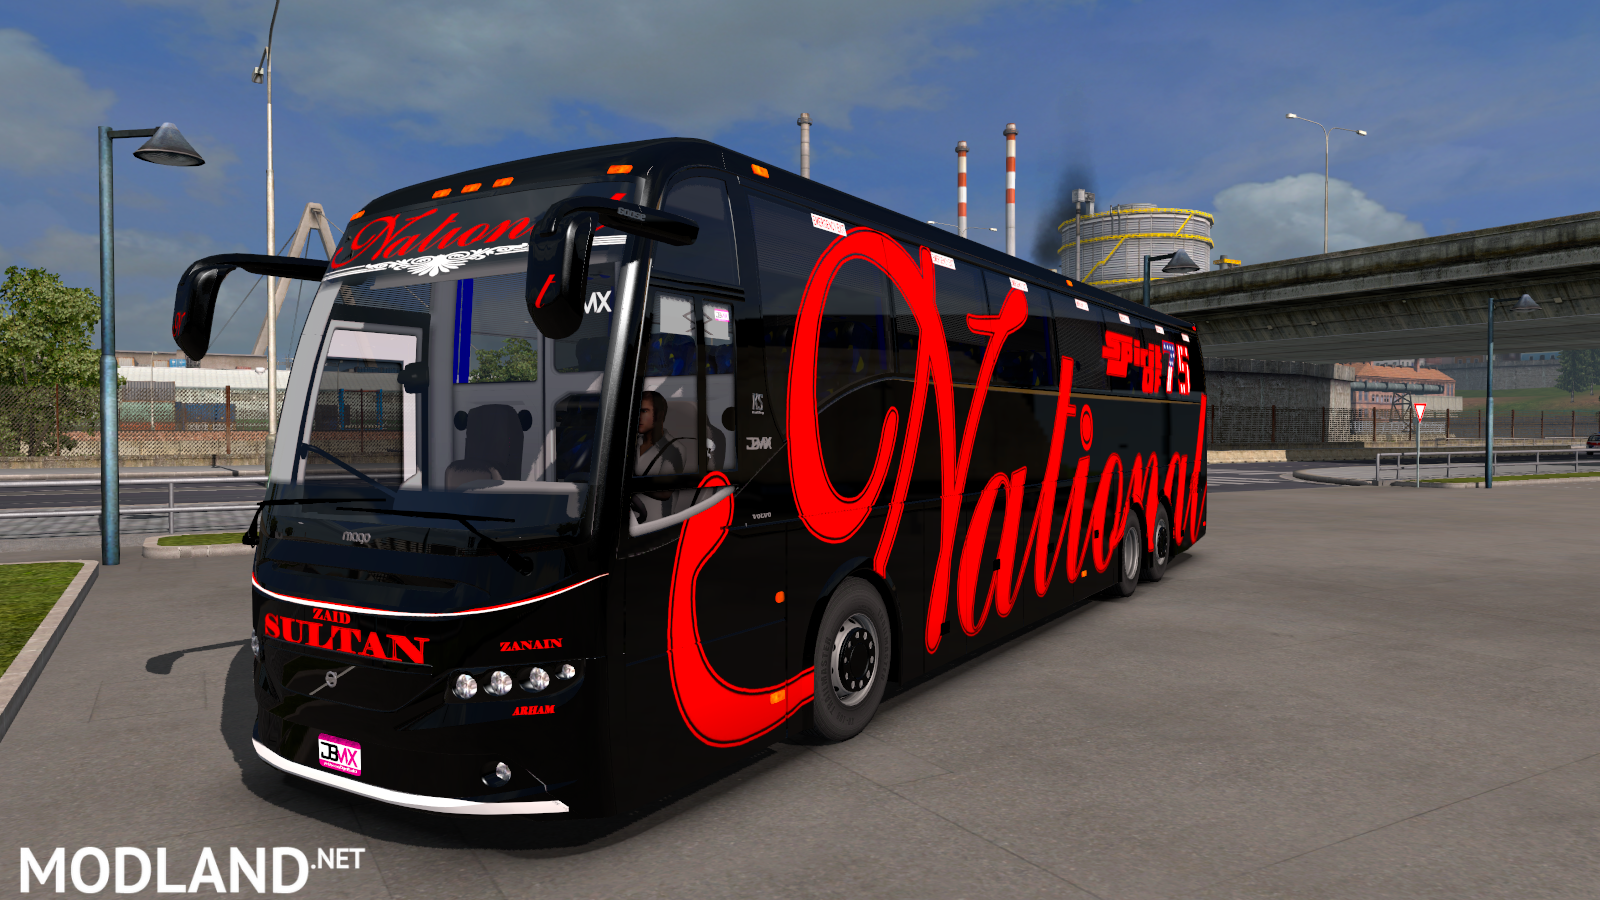 National Sultan Skin For Volvo Dbmx Px And Grand Mod For Ets 2